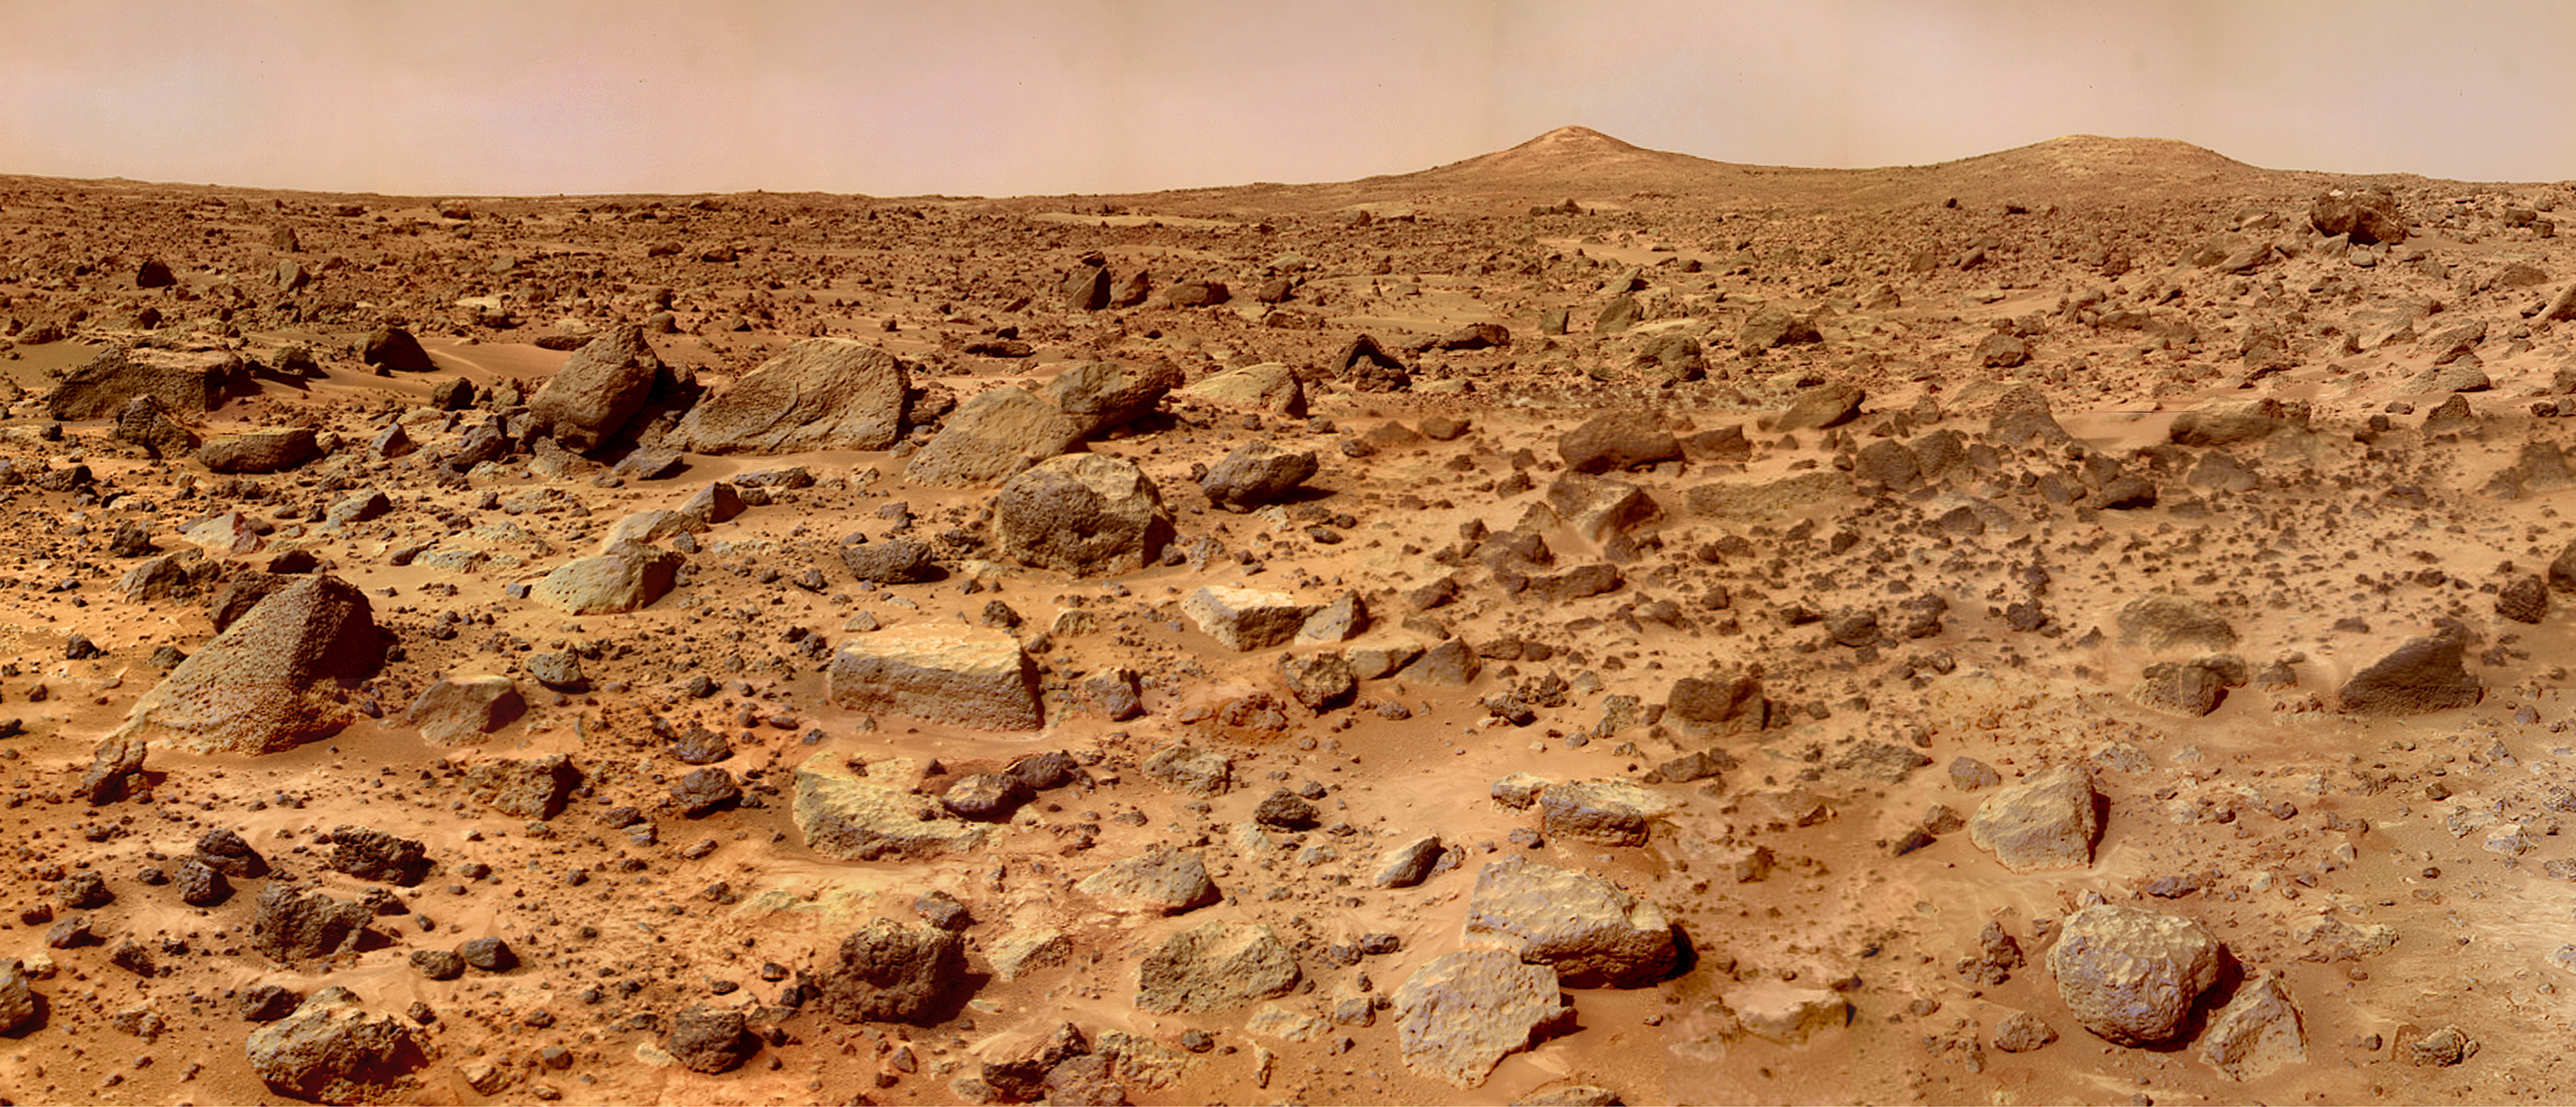 Pathfinder, 1997: The first mission to land a rover on Mars, Pathfinder touched down in Ares Vallis, an ancient flood plain in the planet's northern hemisphere. Among the 2.3 billion bits of data sent back by the lander and its rover, Sojourner, were 15 chemical analyses of rocks and soil, which suggested Mars had once had liquid water and a thicker atmosphere.